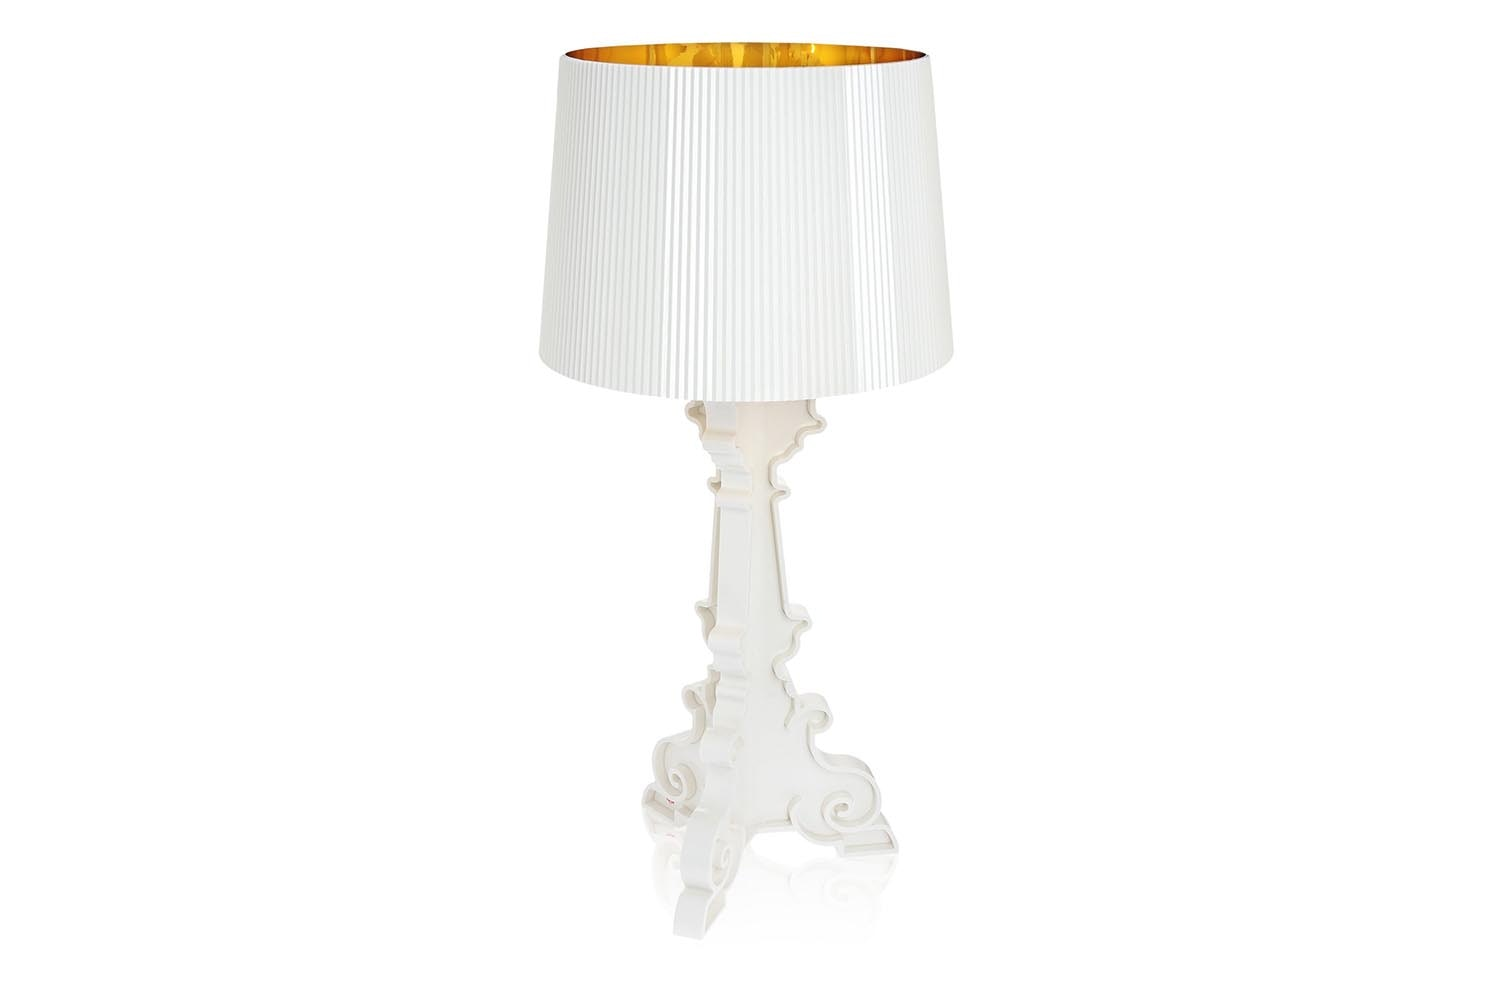 Bourgie White/Gold Table Lamp By Ferruccio Laviani For Kartell | Space  Furniture